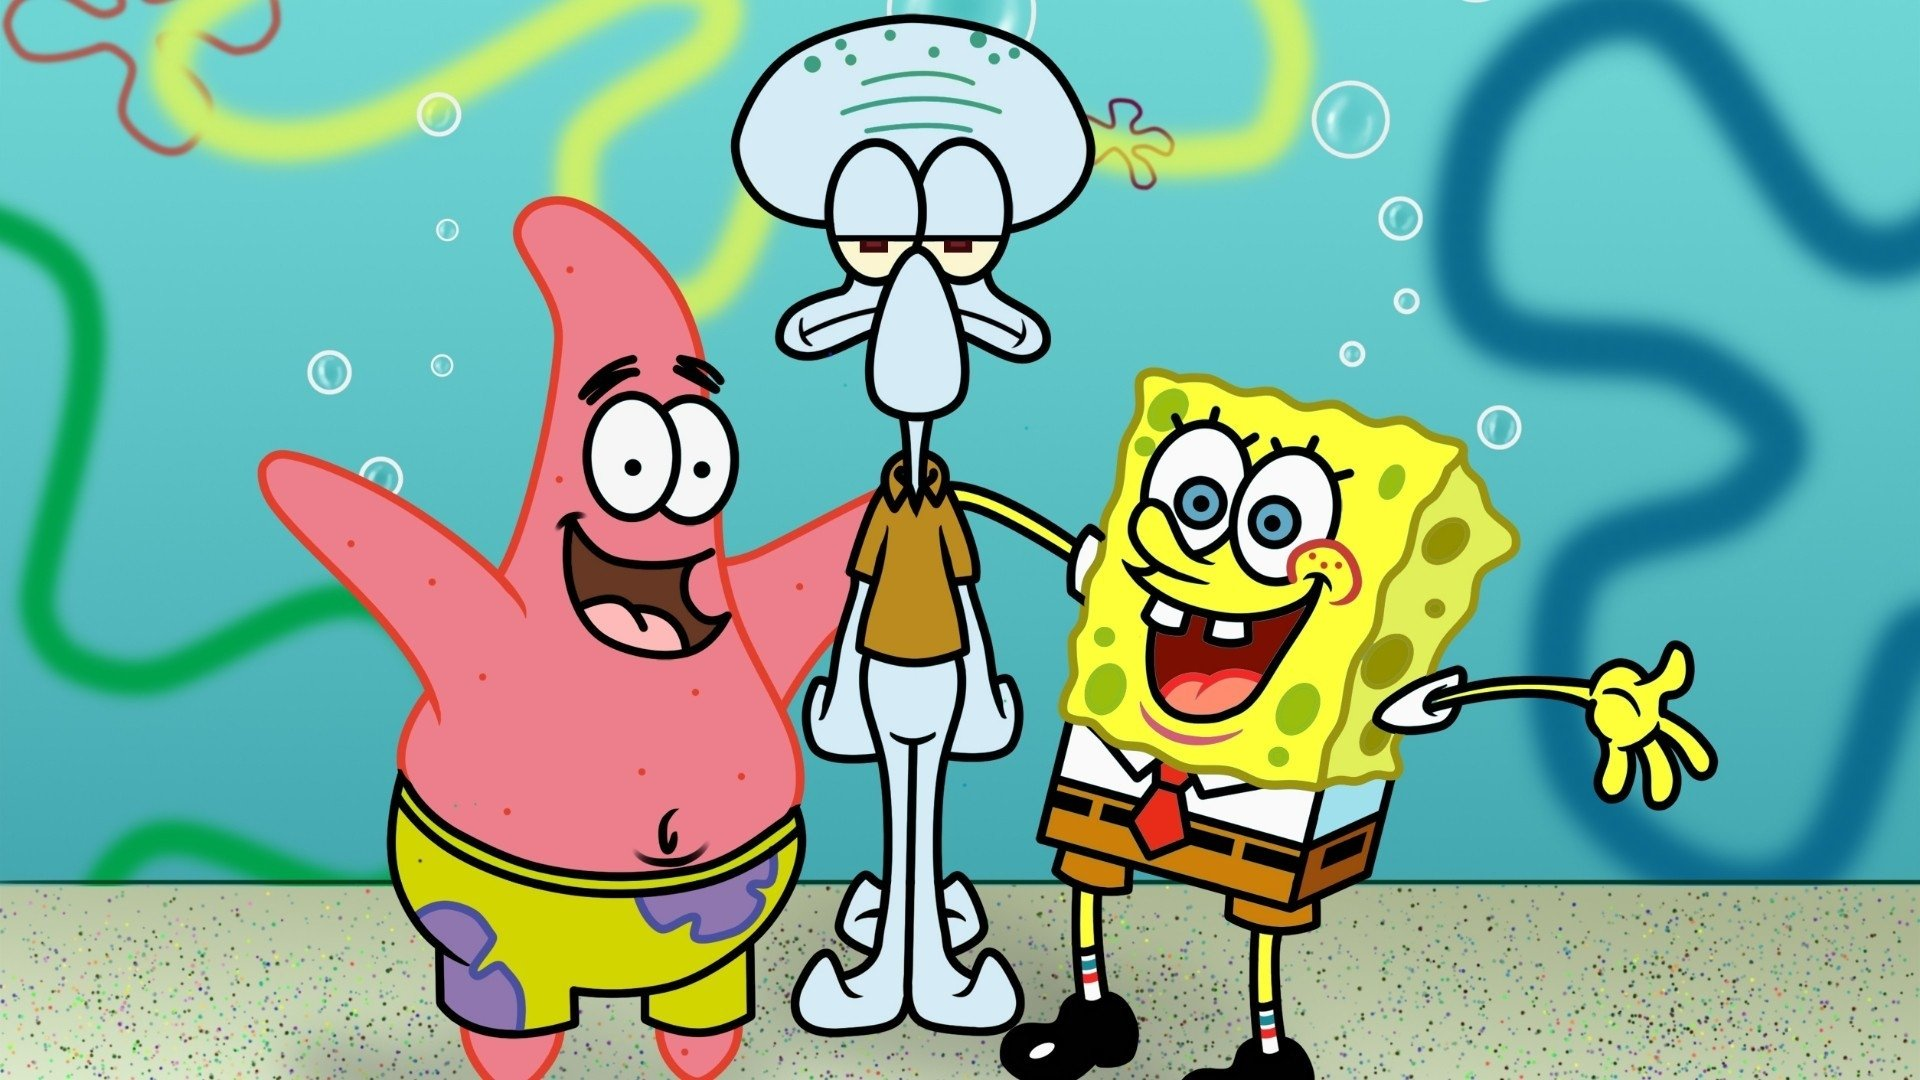 海绵宝宝 images spongebob, patrick and squidward 壁纸 hd wallpap